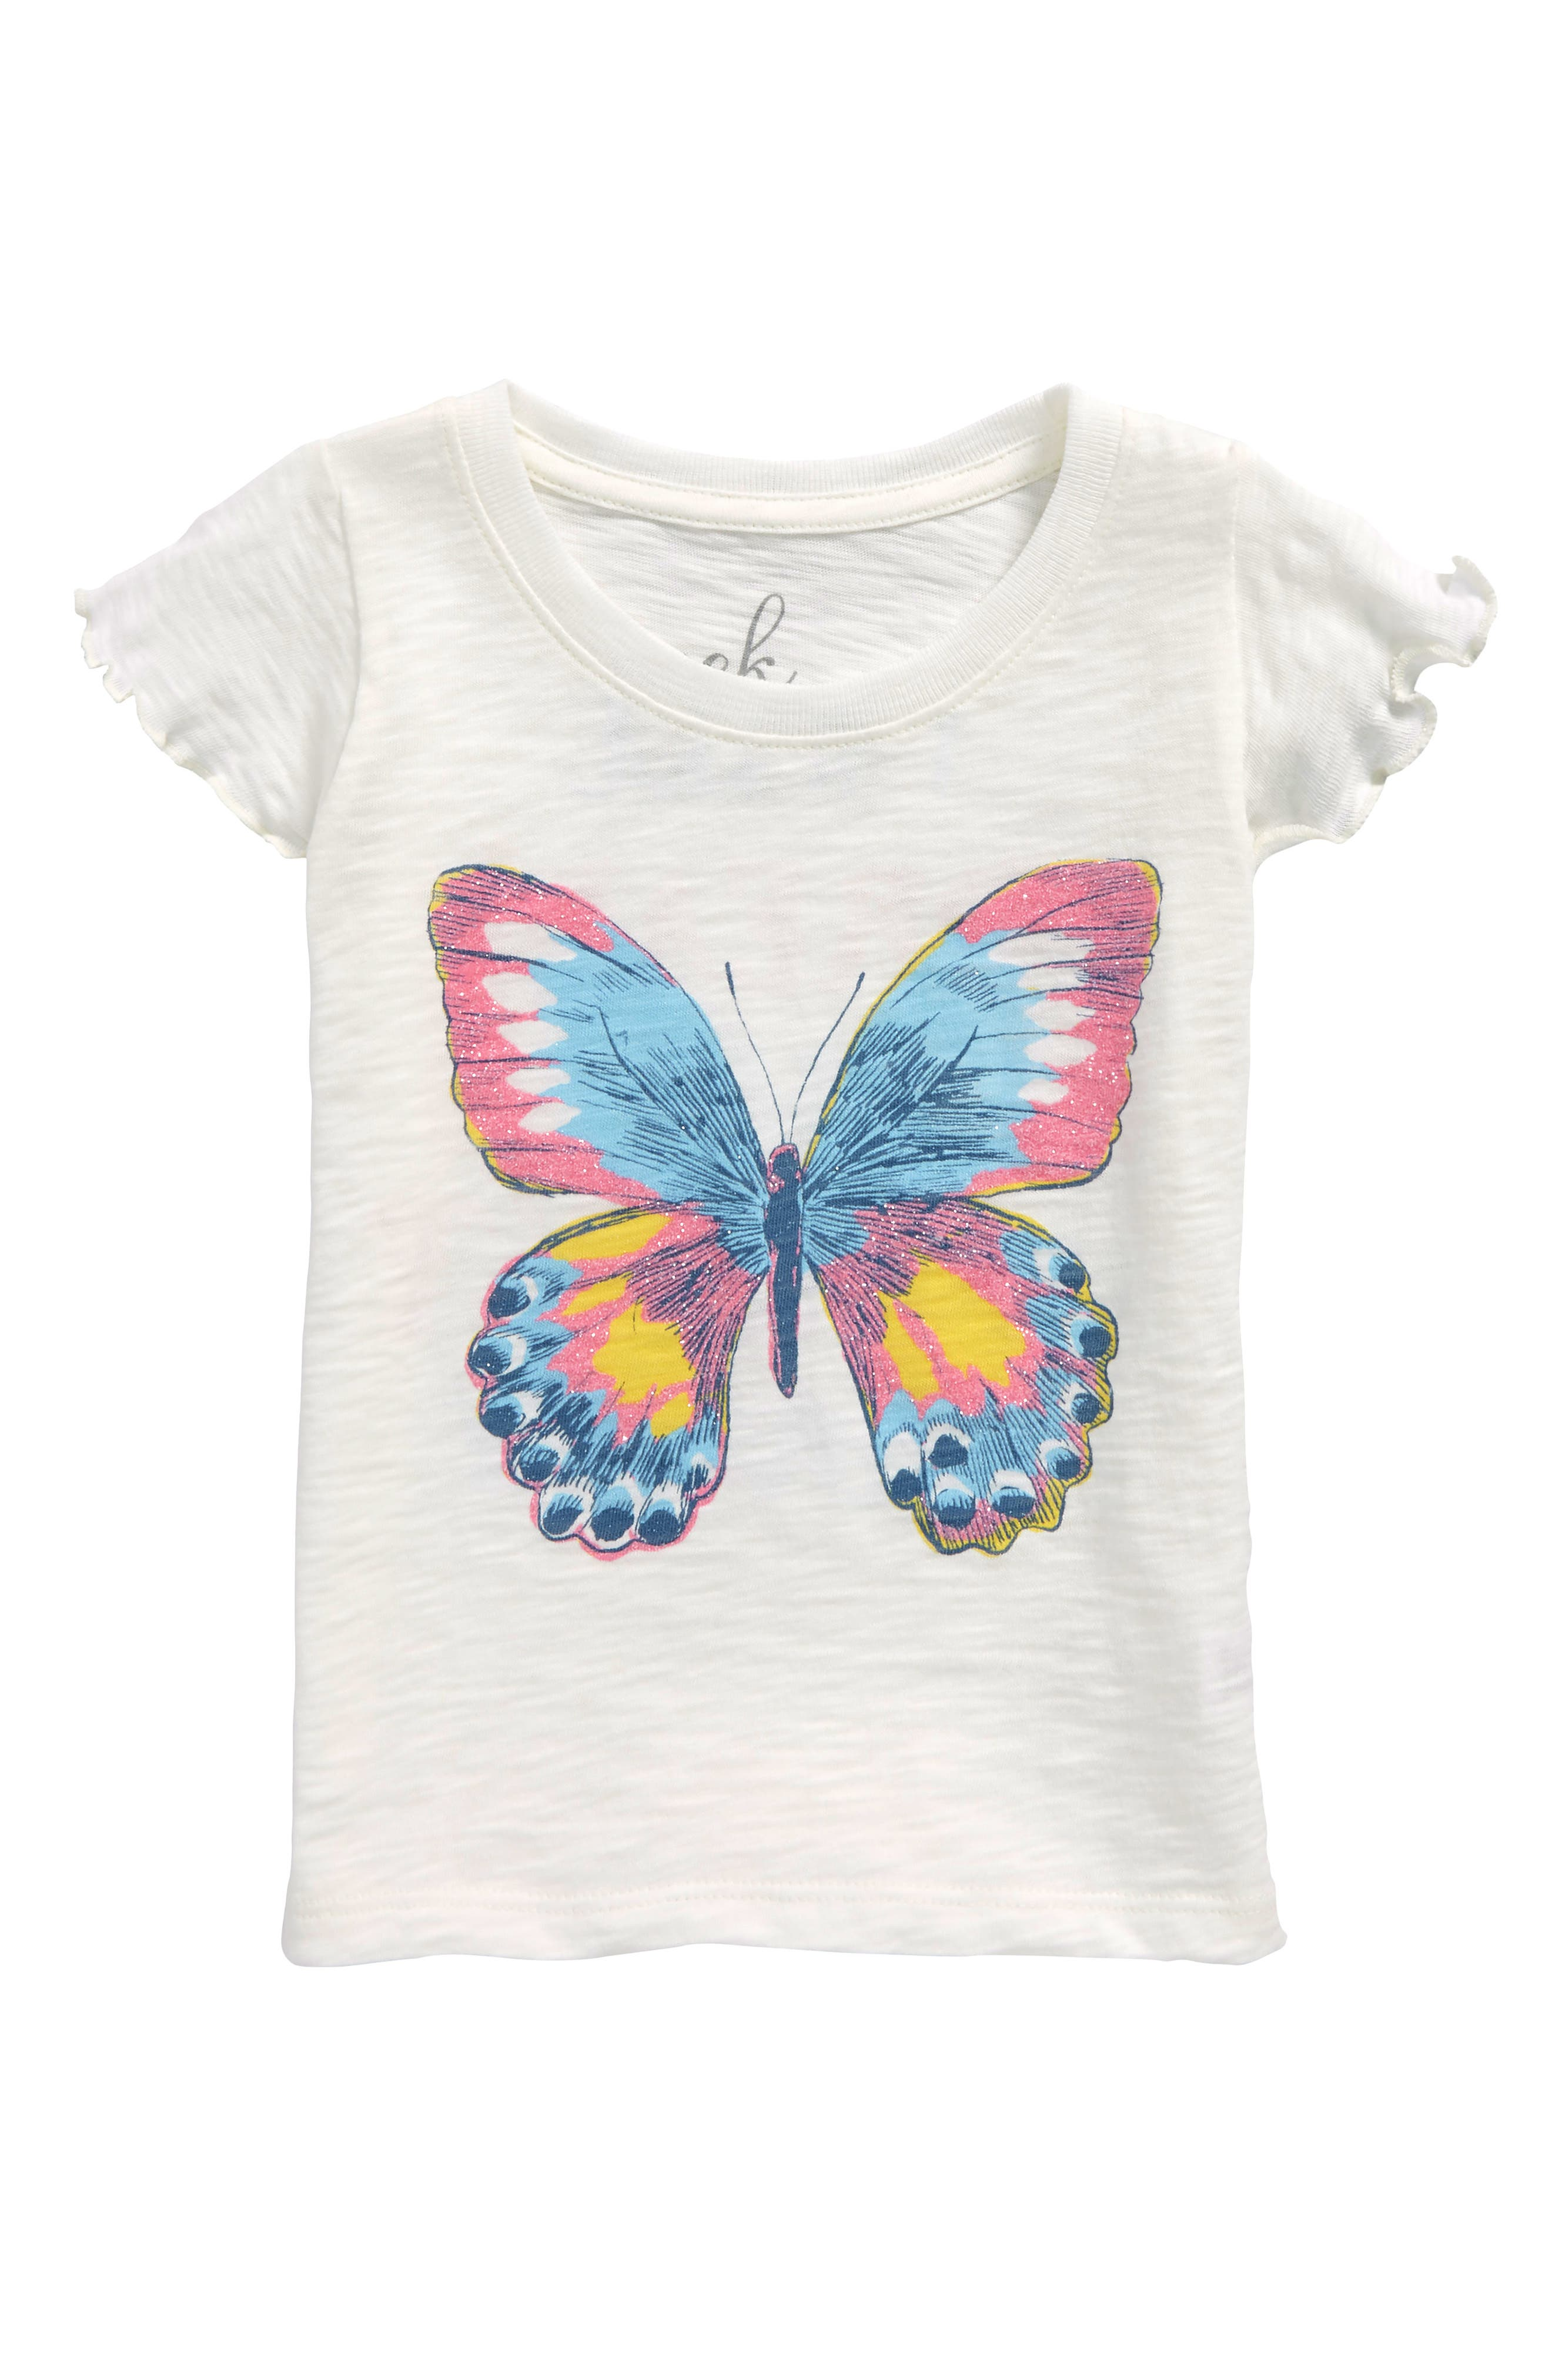 PEEK AREN'T YOU CURIOUS Peek Butterfly Graphic Tee, Main, color, 100